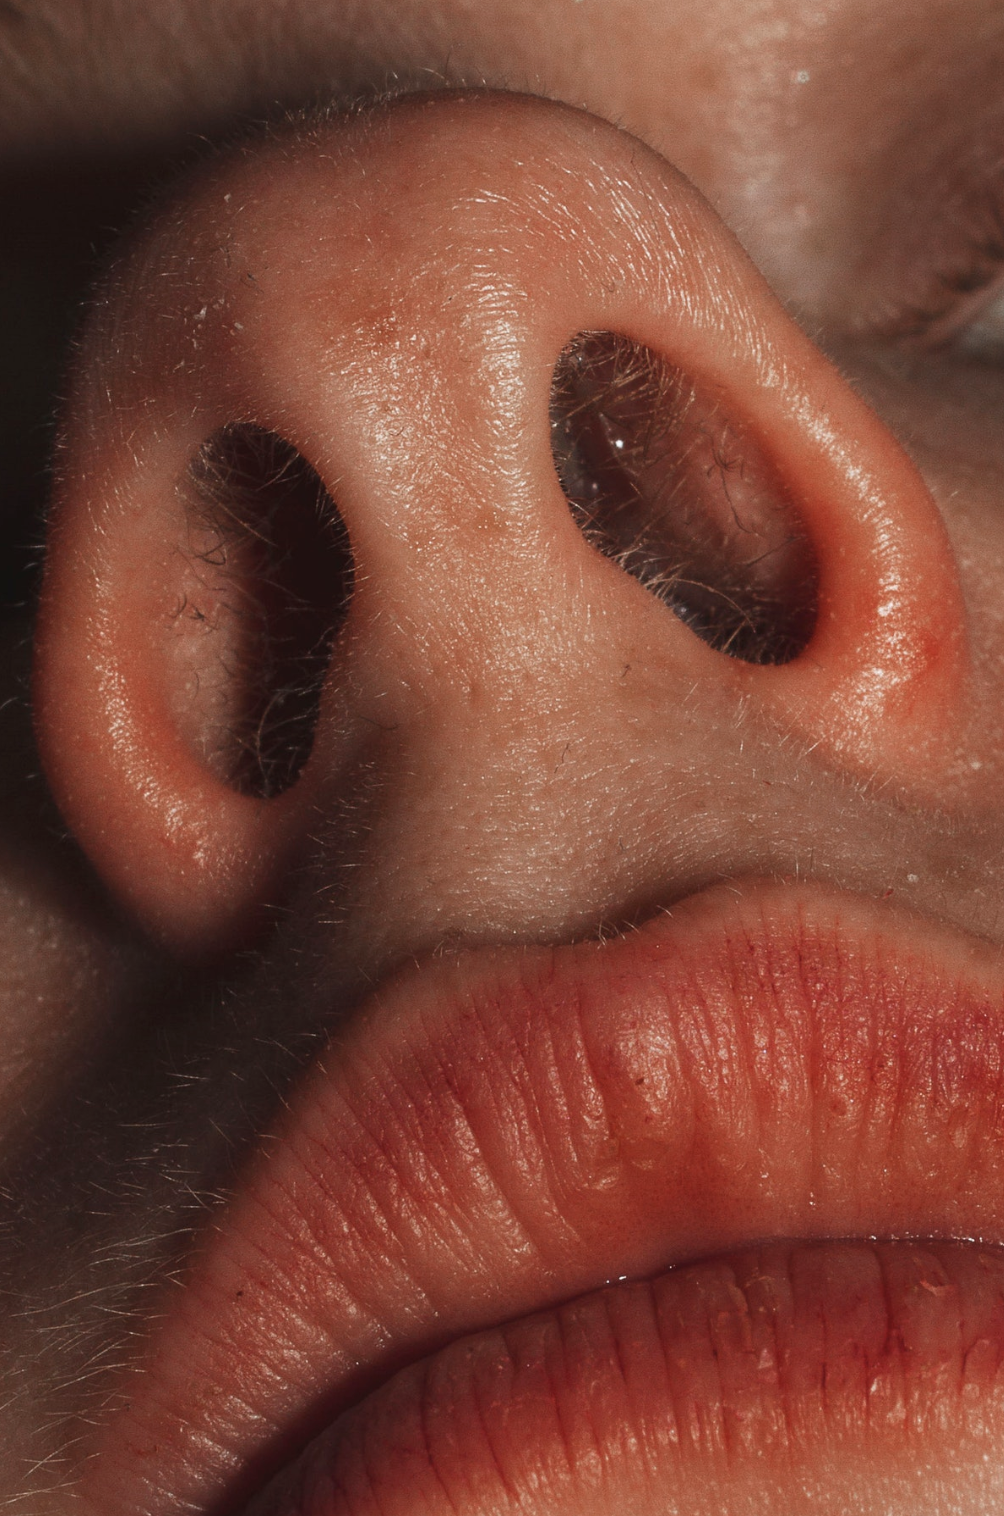 A photo taken from looking up at woman's nose and mouth in high definition